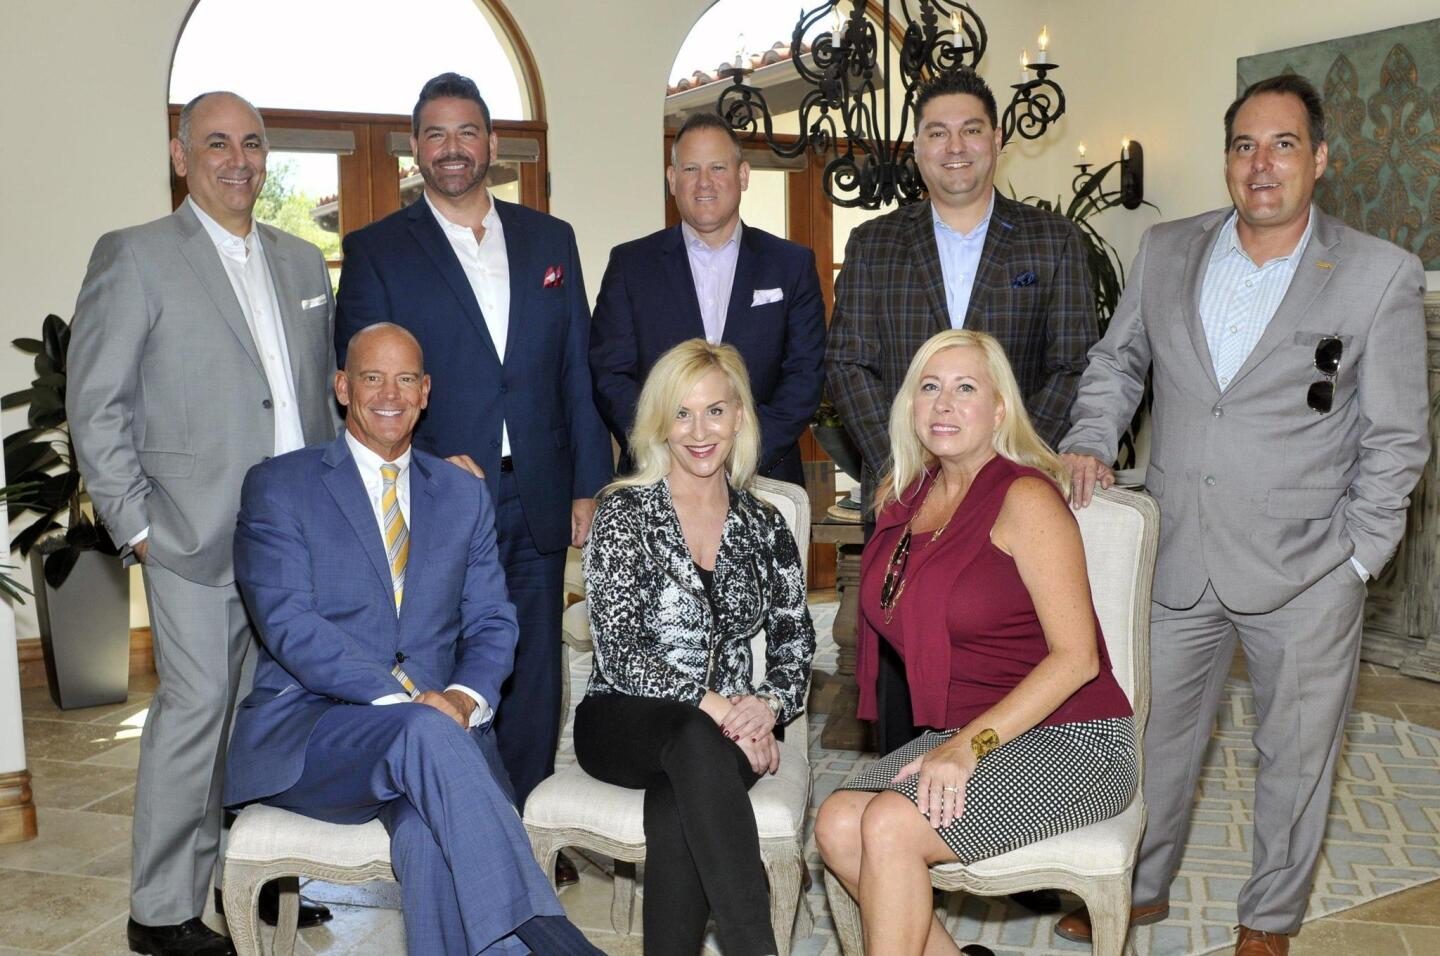 Coldwell Banker event